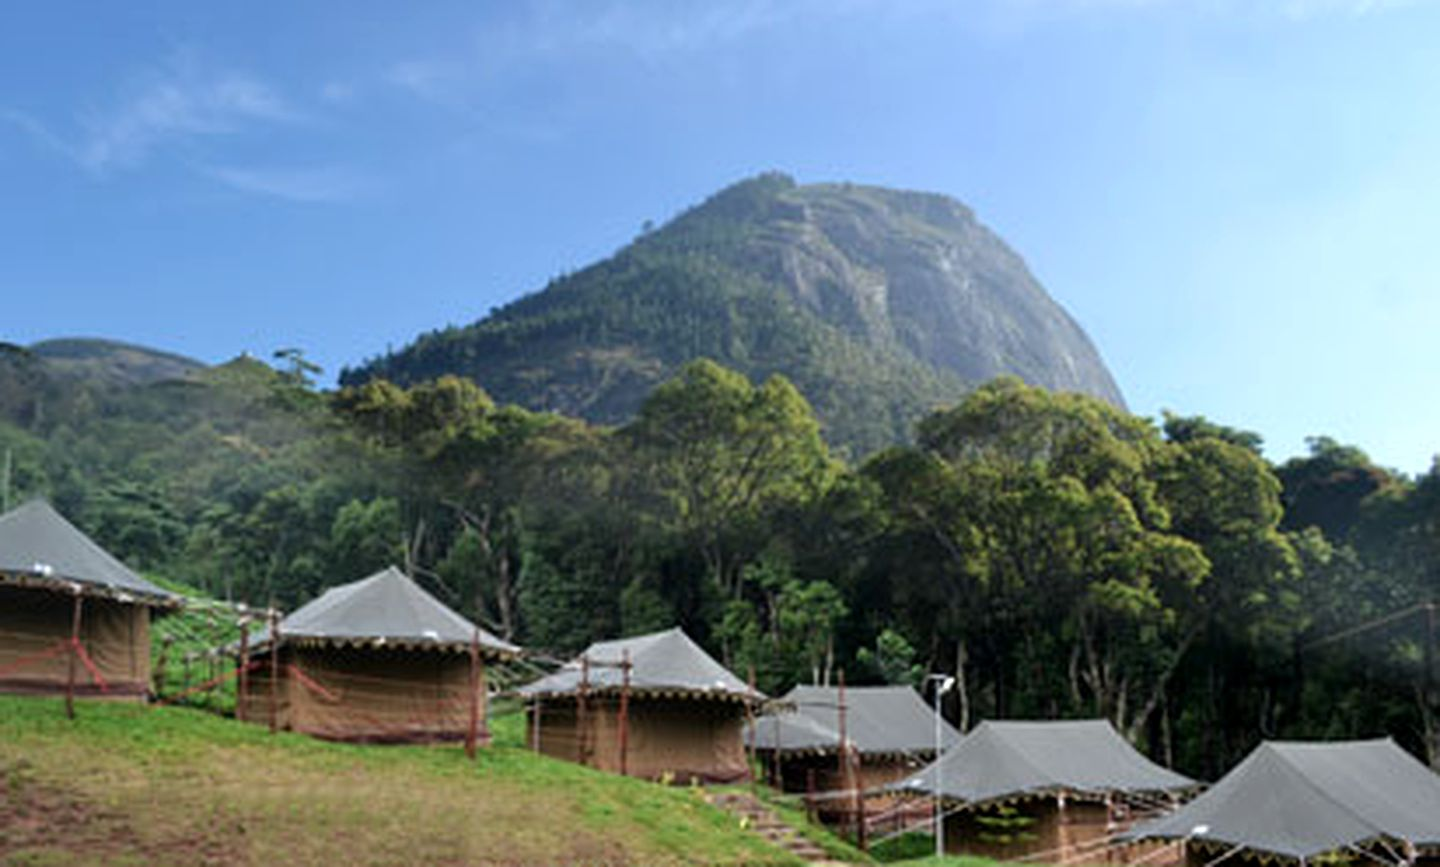 Tented Cabins (Munnar, Kerala, India)